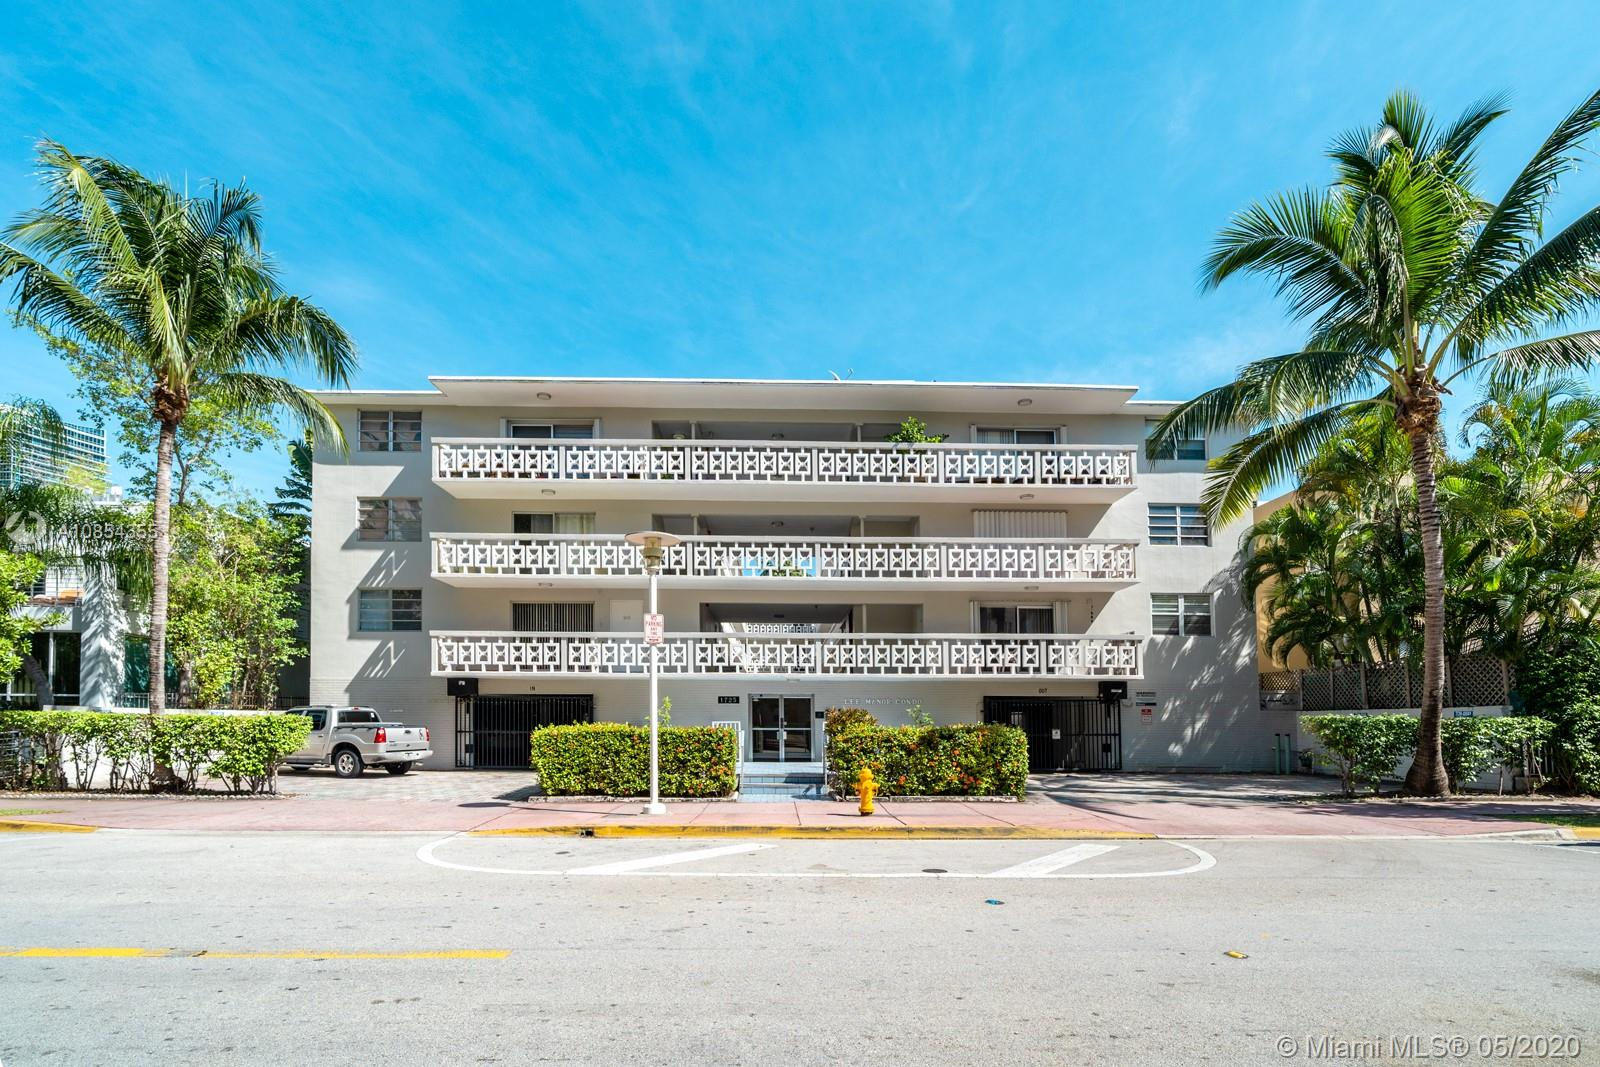 1725 James Ave # 17, Miami Beach, Florida 33139, 1 Bedroom Bedrooms, ,1 BathroomBathrooms,Residential,For Sale,1725 James Ave # 17,A10854355